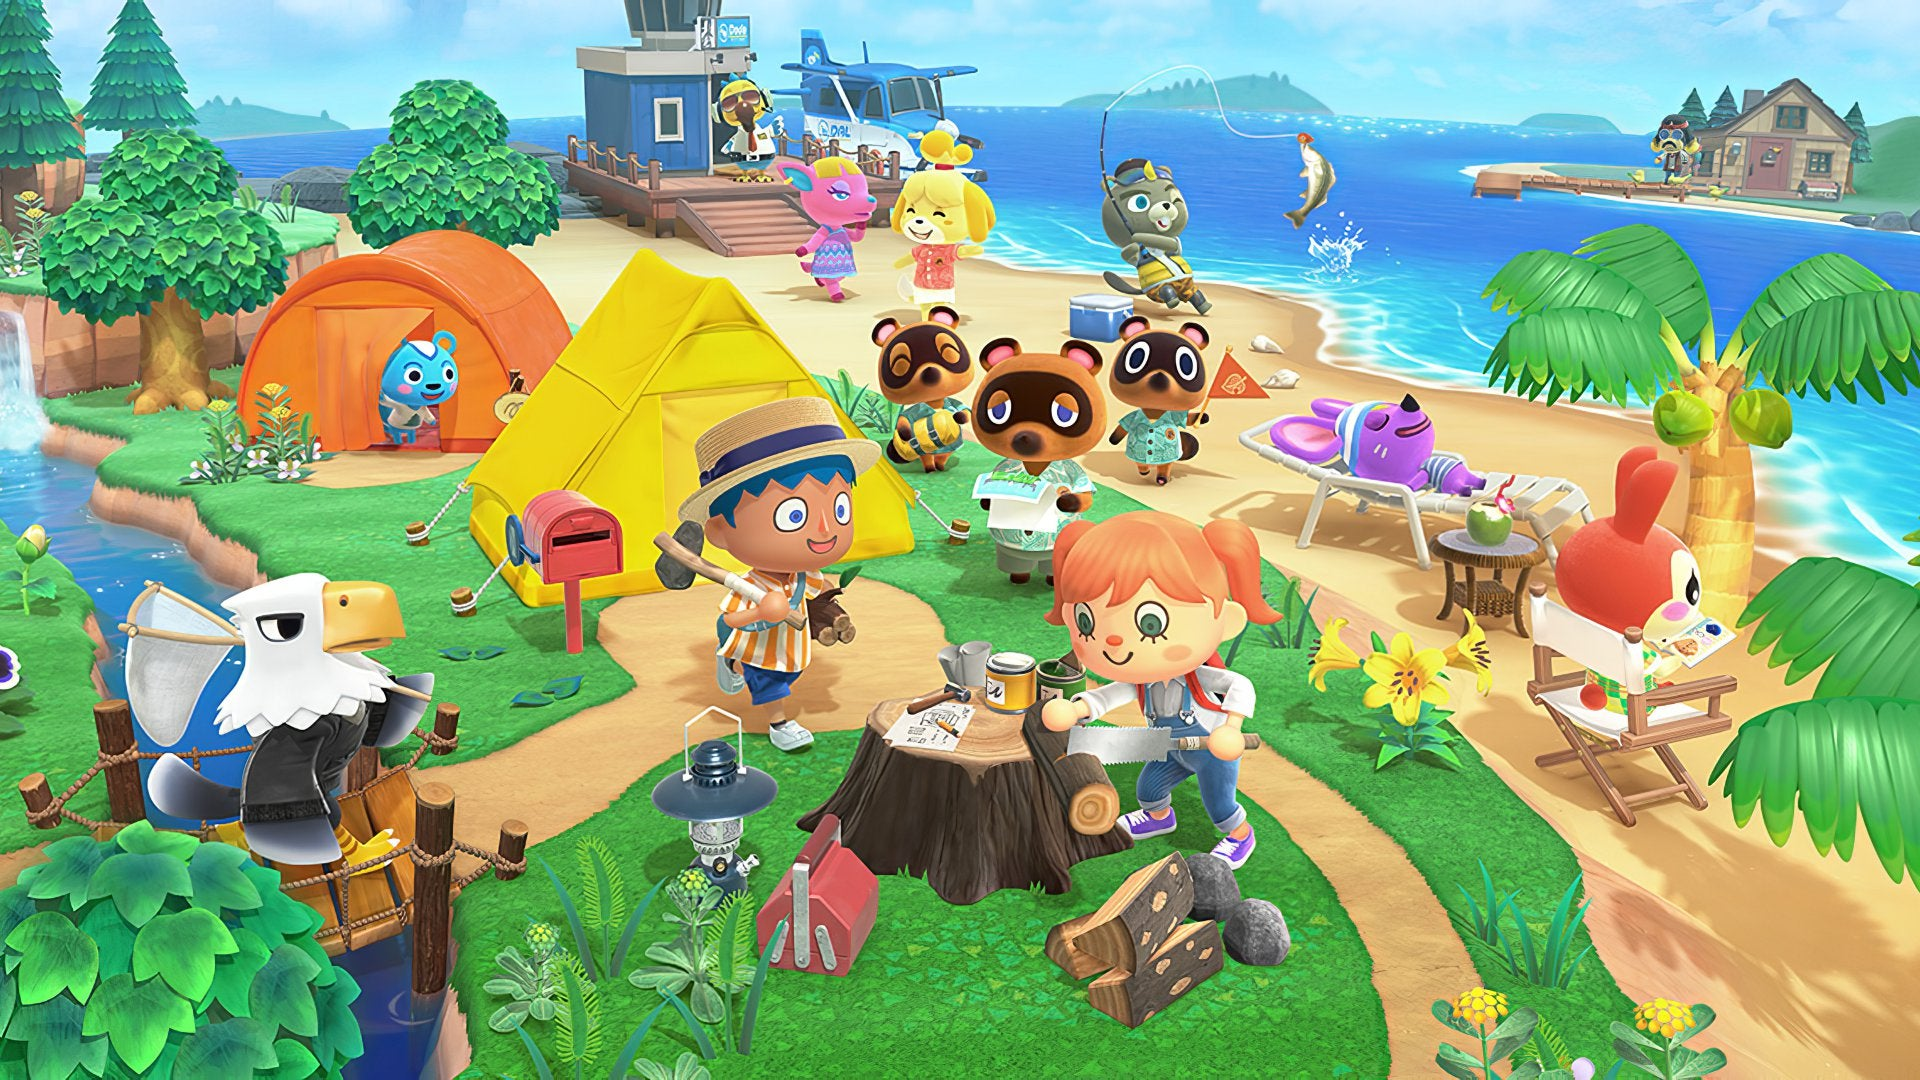 Method to catch critters without missing a single one in Animal Crossing: New Horizons